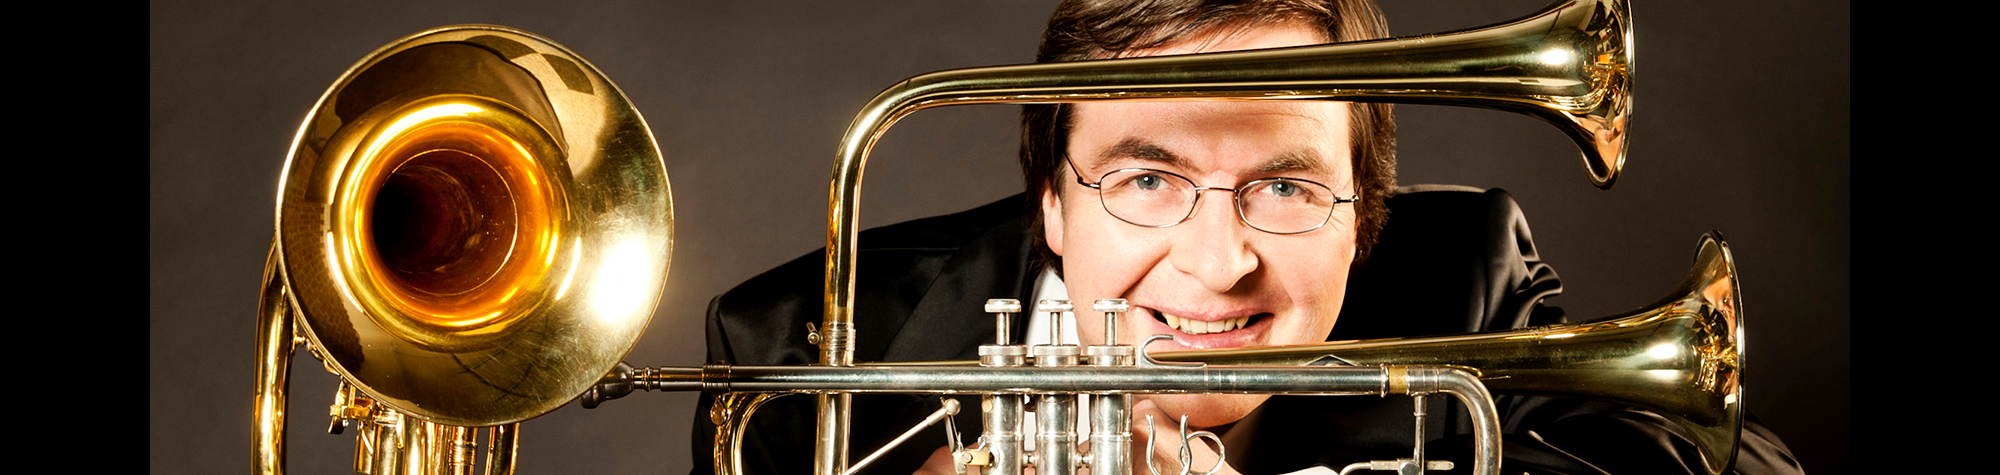 Matthias Höfs Trumpet Interview – The Other Side of the Bell #81